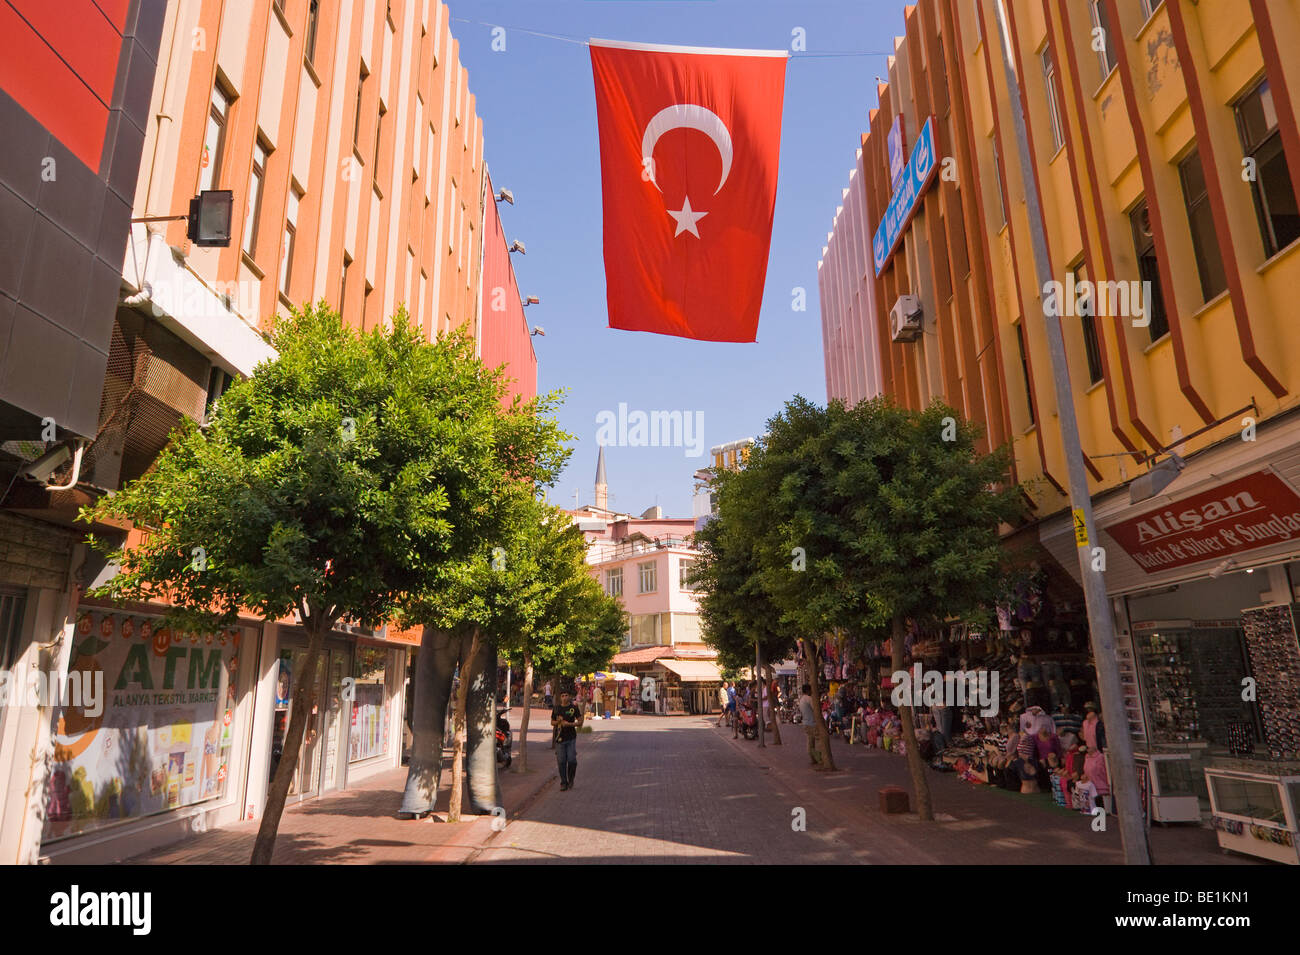 Turkish flag flying in the city of Alanya in southern Mediterranean Turkey - Stock Image